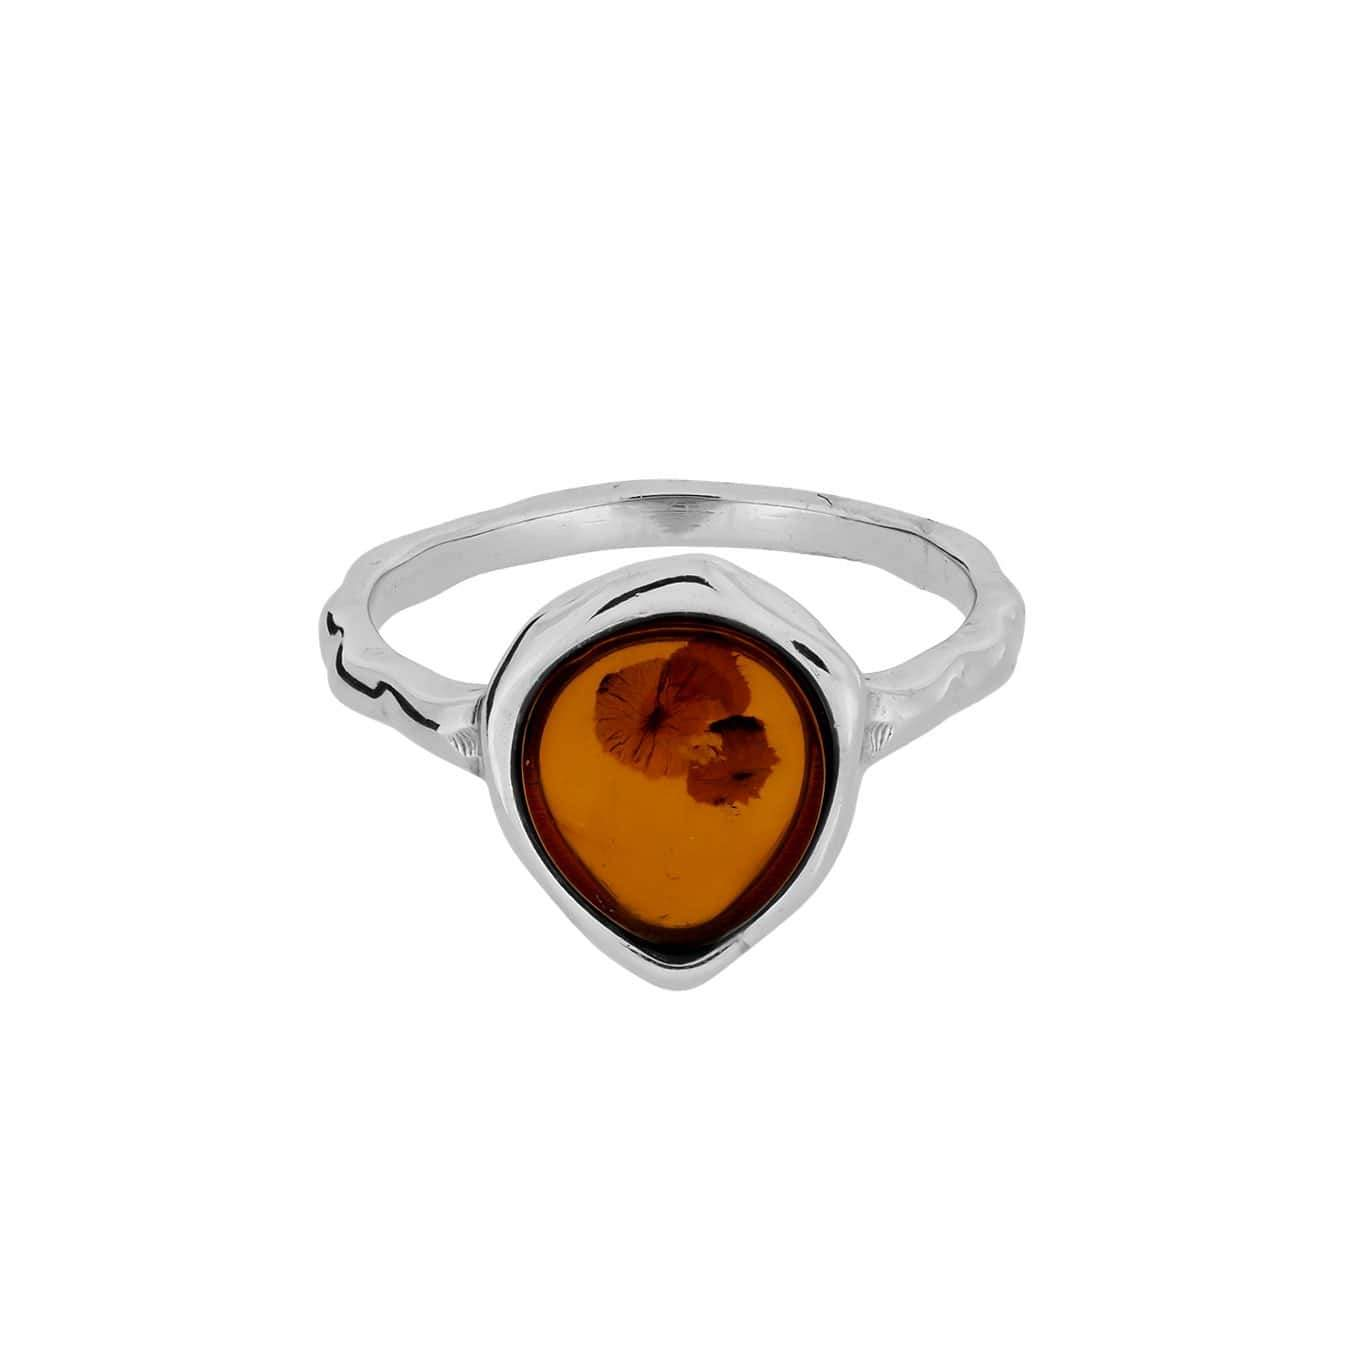 Northern Lights Baltic Amber Ring in Silver